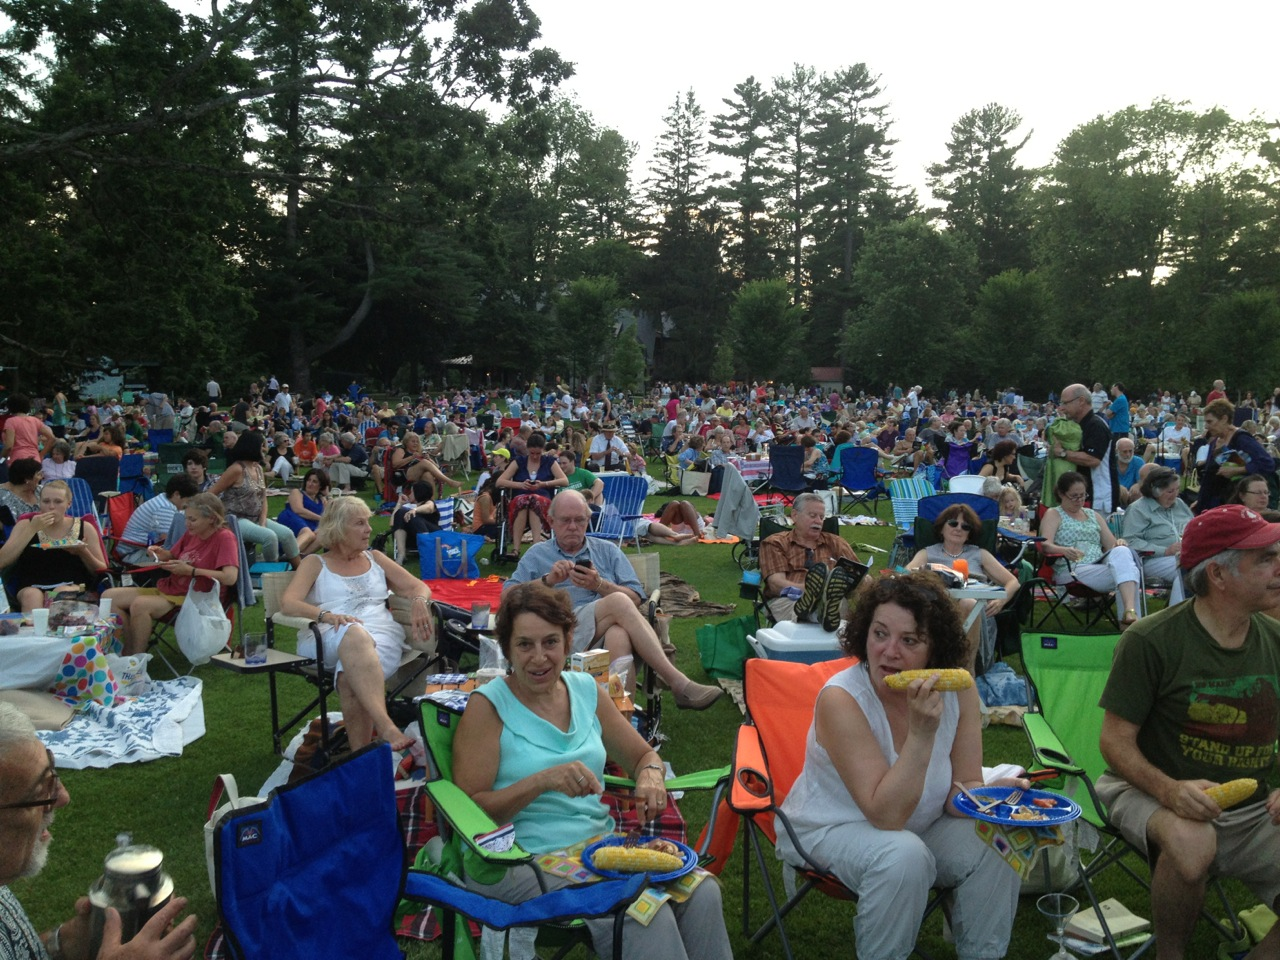 The Tanglewood crowd.